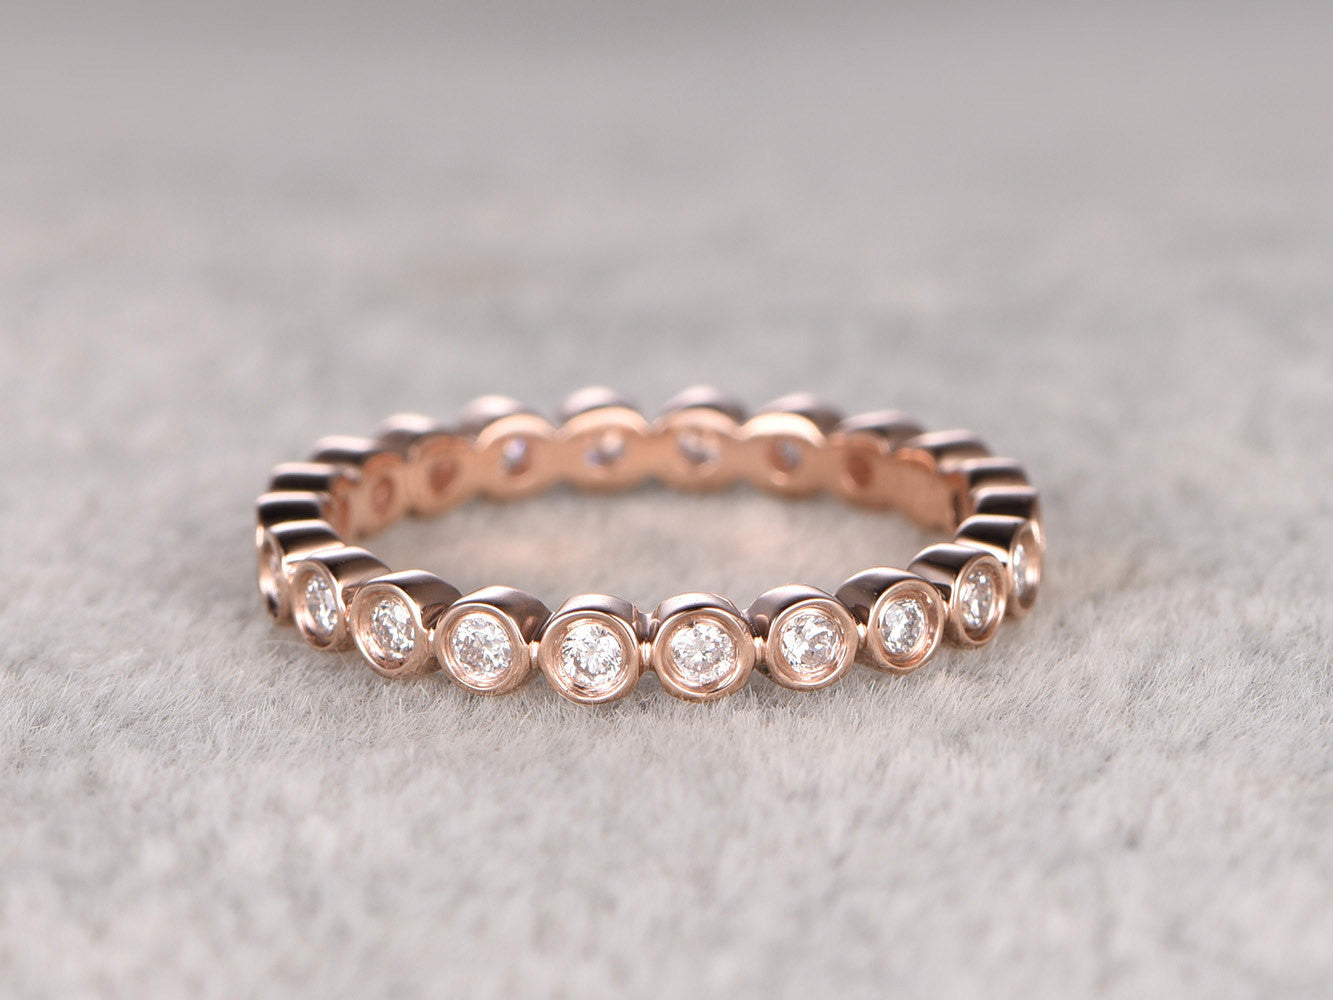 Full Eternity,1.5mm Round Diamond Wedding Ring,Solid 14K Rose gold,Anniversary Ring,Bezel Set,Infinity,stacking Ring,Matching band